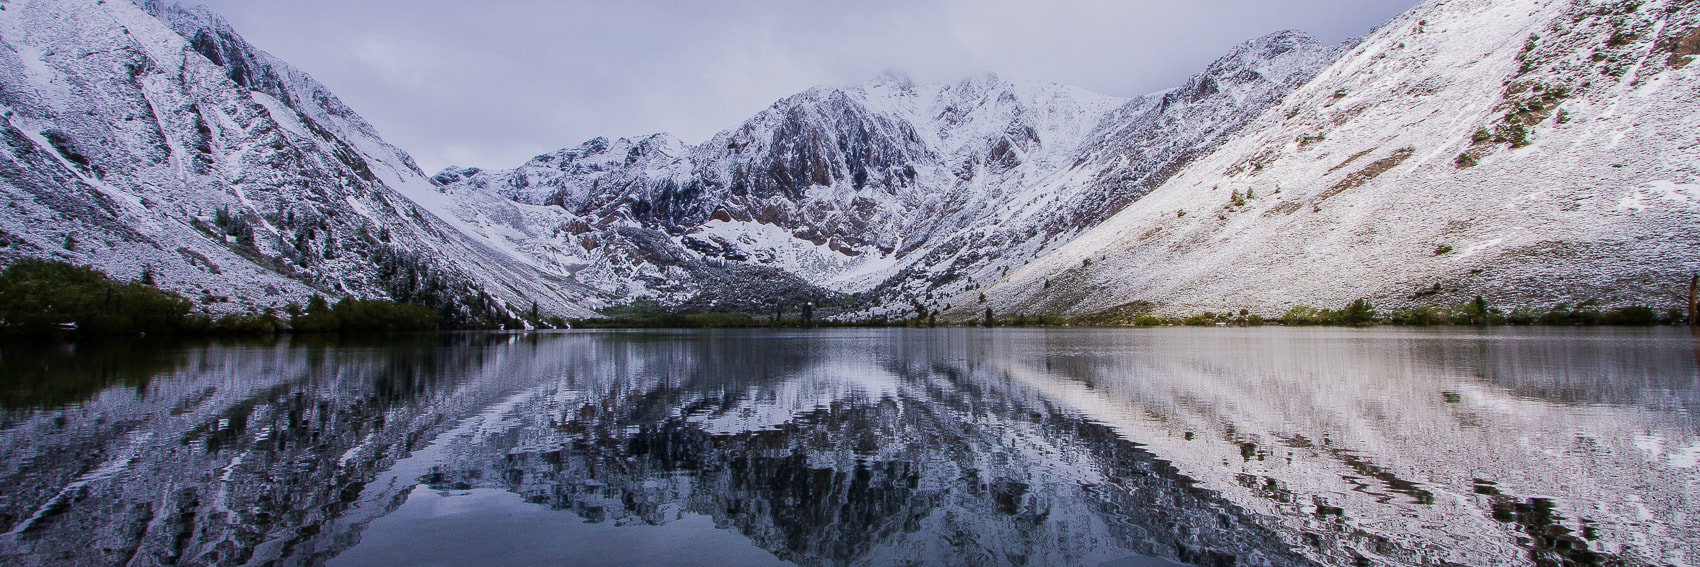 Photograph Morning at Convict Lake by Mike Wiacek on 500px